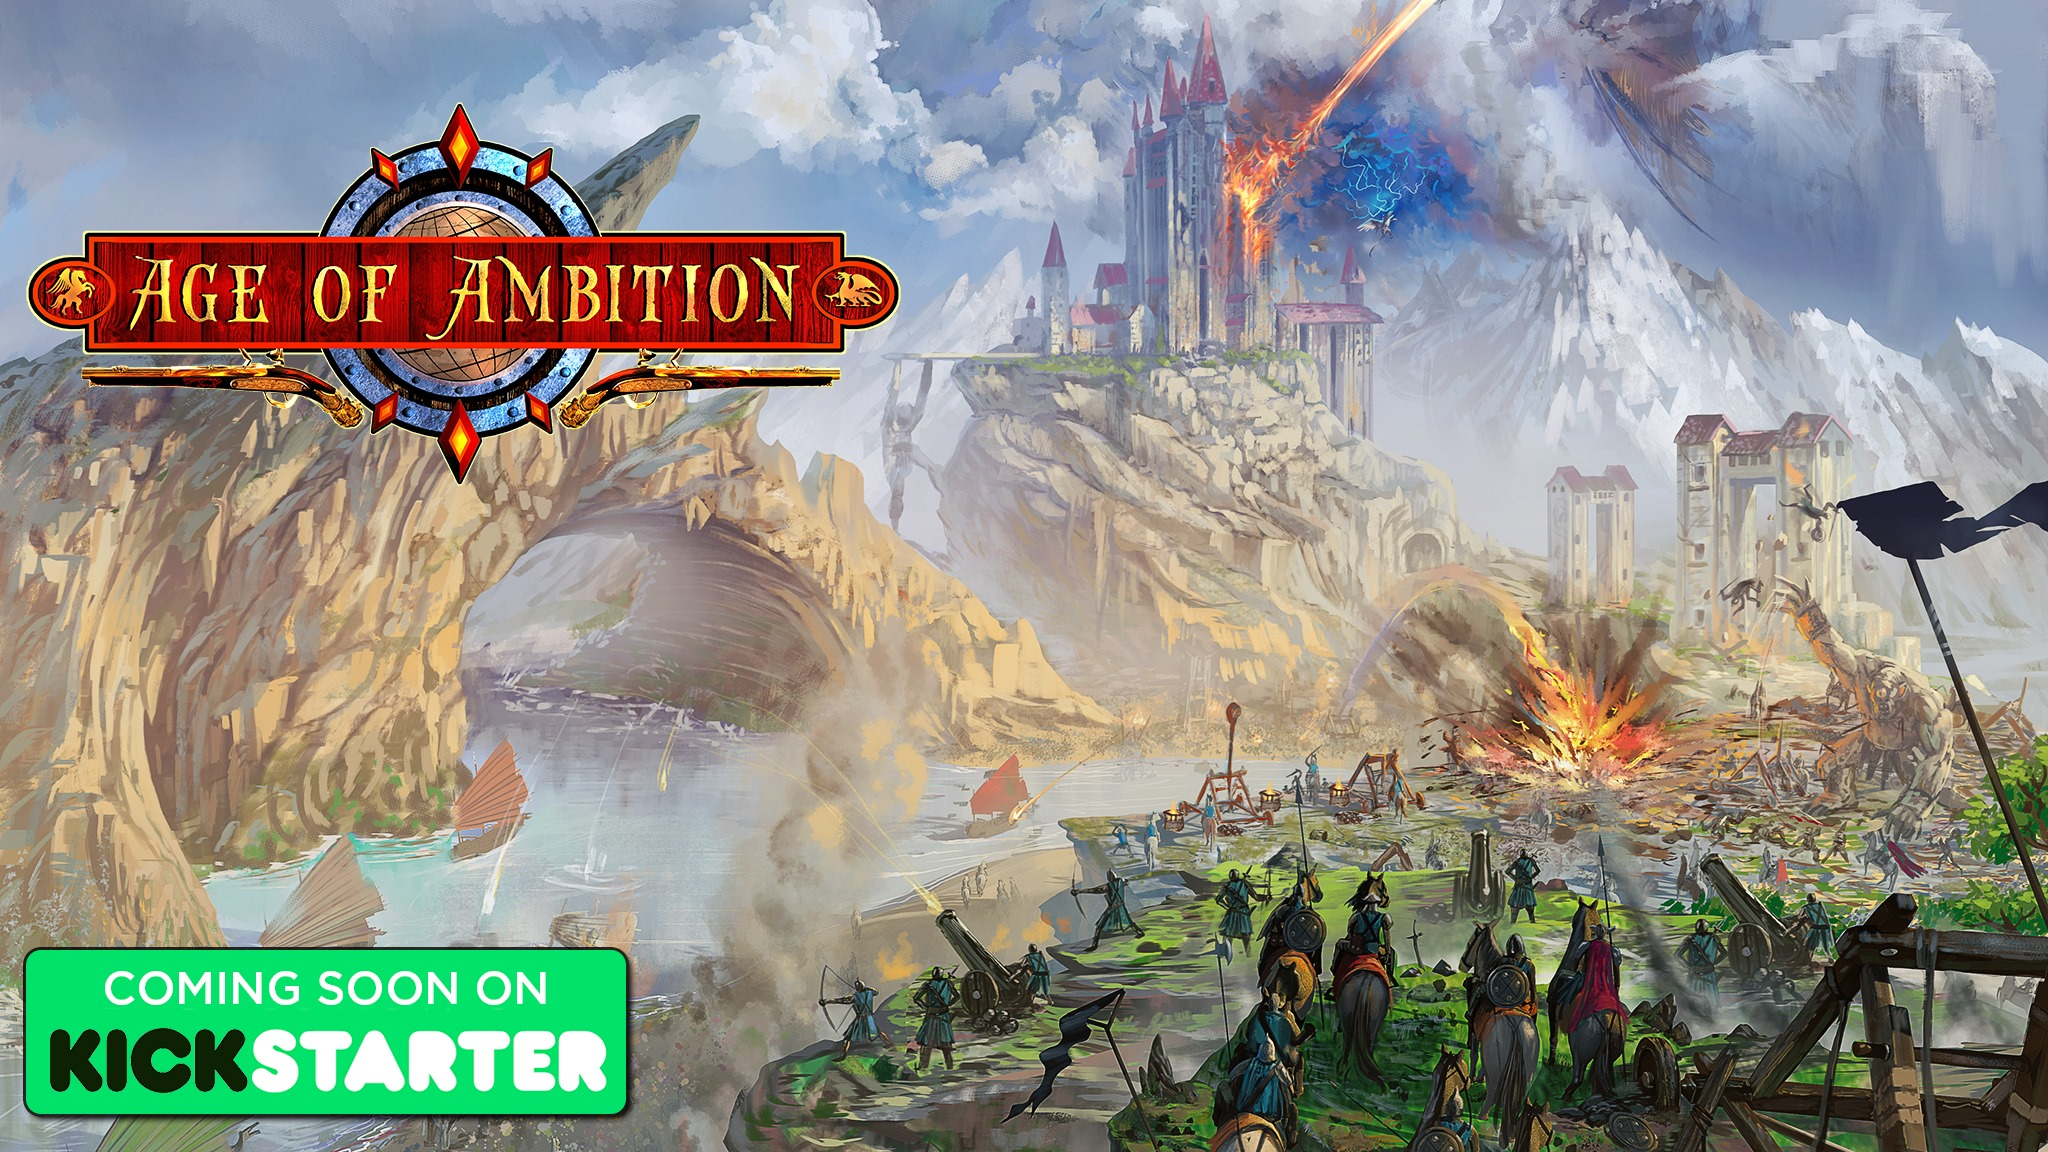 Age of Ambition: Coming to Kickstarter Tomorrow!